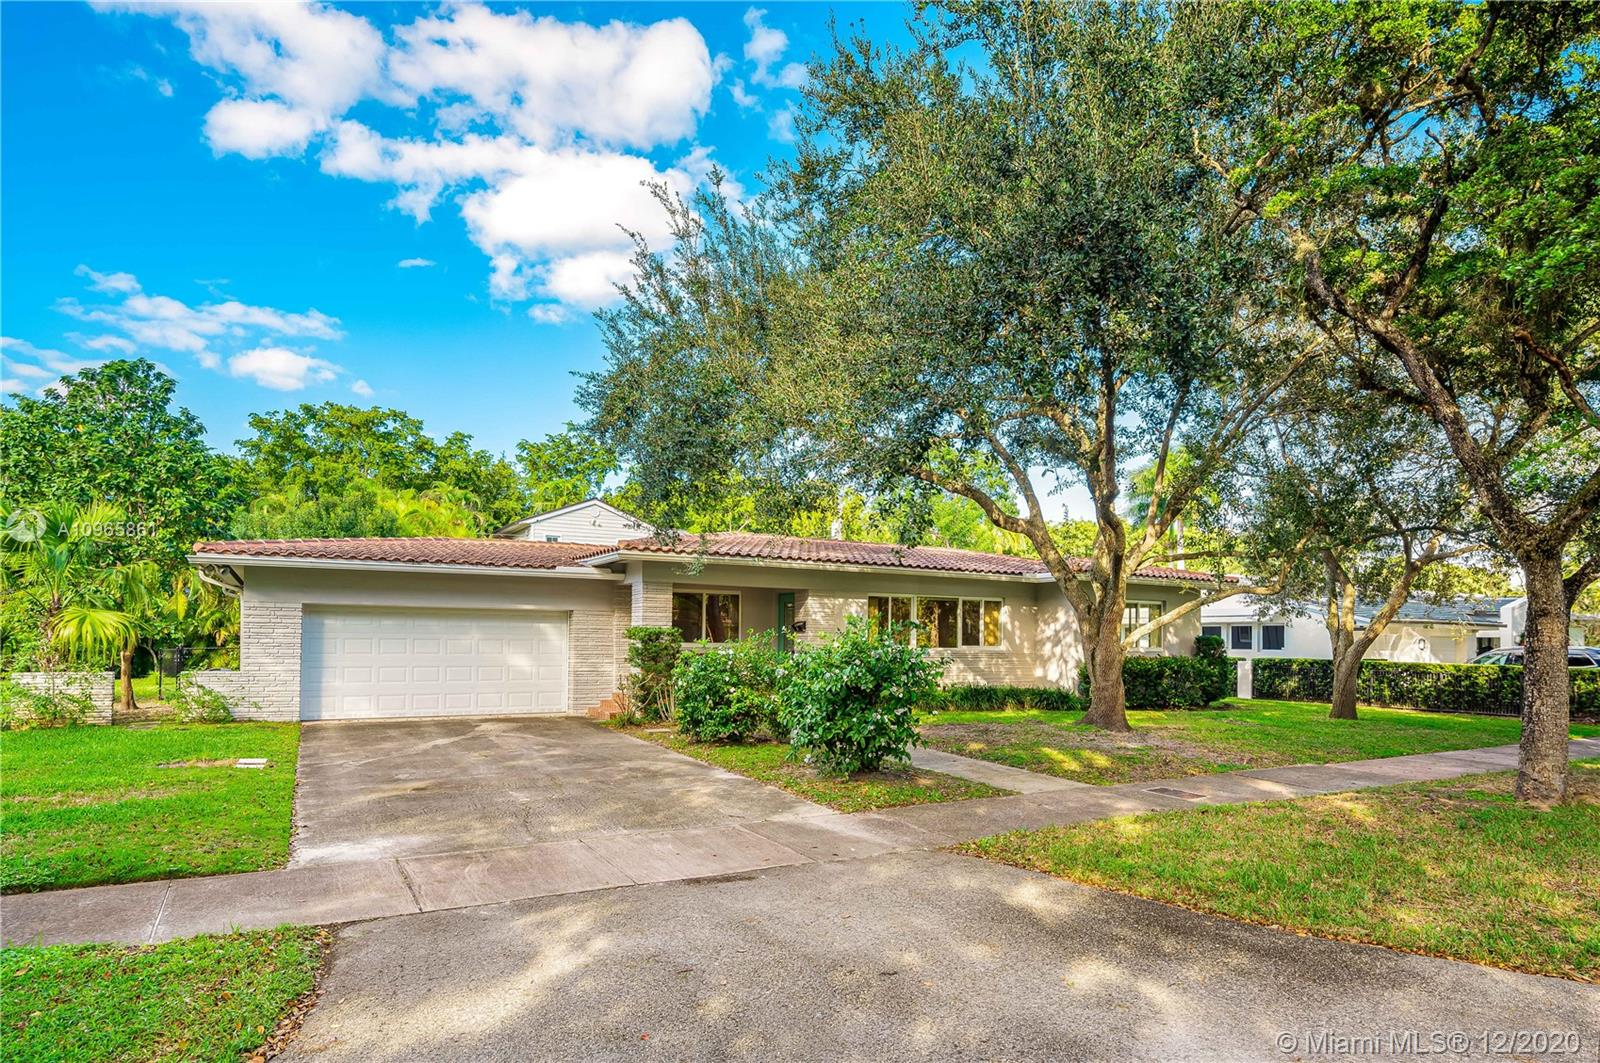 Incredible opportunity in the highly sought after area of South Coral Gables.  Surrounded by multimillion dollar homes, this lovely property sits on an Oak canopied quiet street with beautiful curb appeal.  The lot is over 10,000 square feet with plenty of room for a pool.  Great floor plan with over 2200 square feet of living space, large kitchen, oversized family room, spacious rooms and huge garage.  Needs updating although it's in good condition.  Update, add on or build up and create your dream home.  Excellent schools and moments away from great restaurants, hospitals and shops.